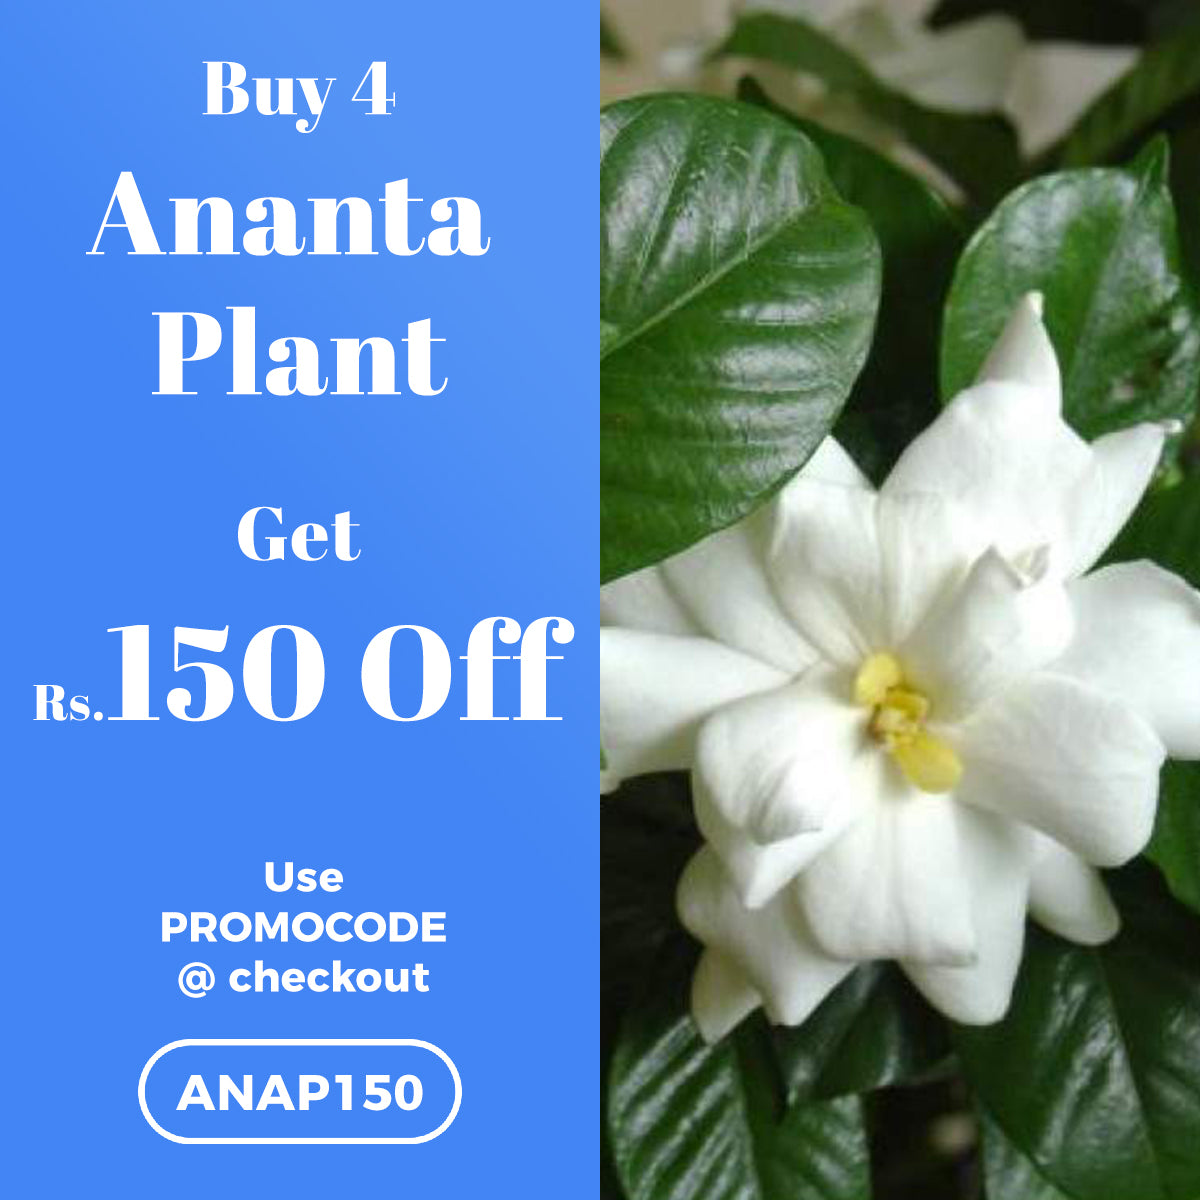 Buy 4 Ananta Plant and get Rs.150 OFF